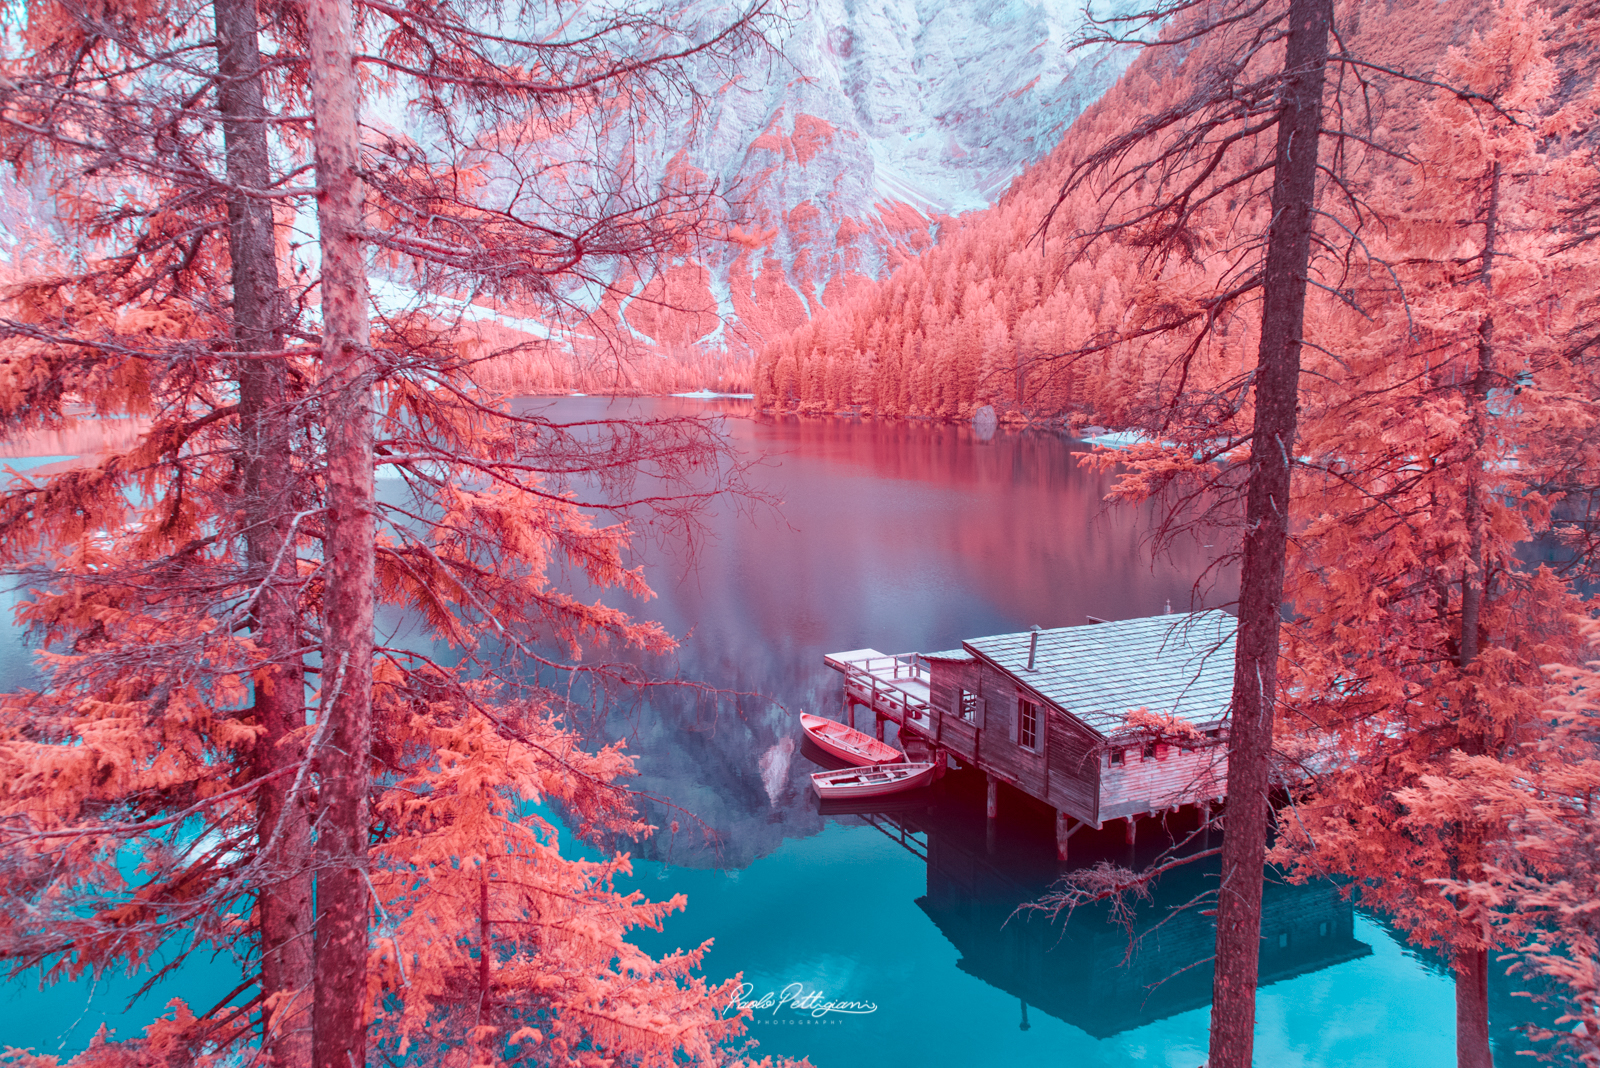 Italy's Dolomites captured in infrared - Lonely Planet Travel News. Article by James Gabriel Martin. Photographs by Paolo Pettigiani